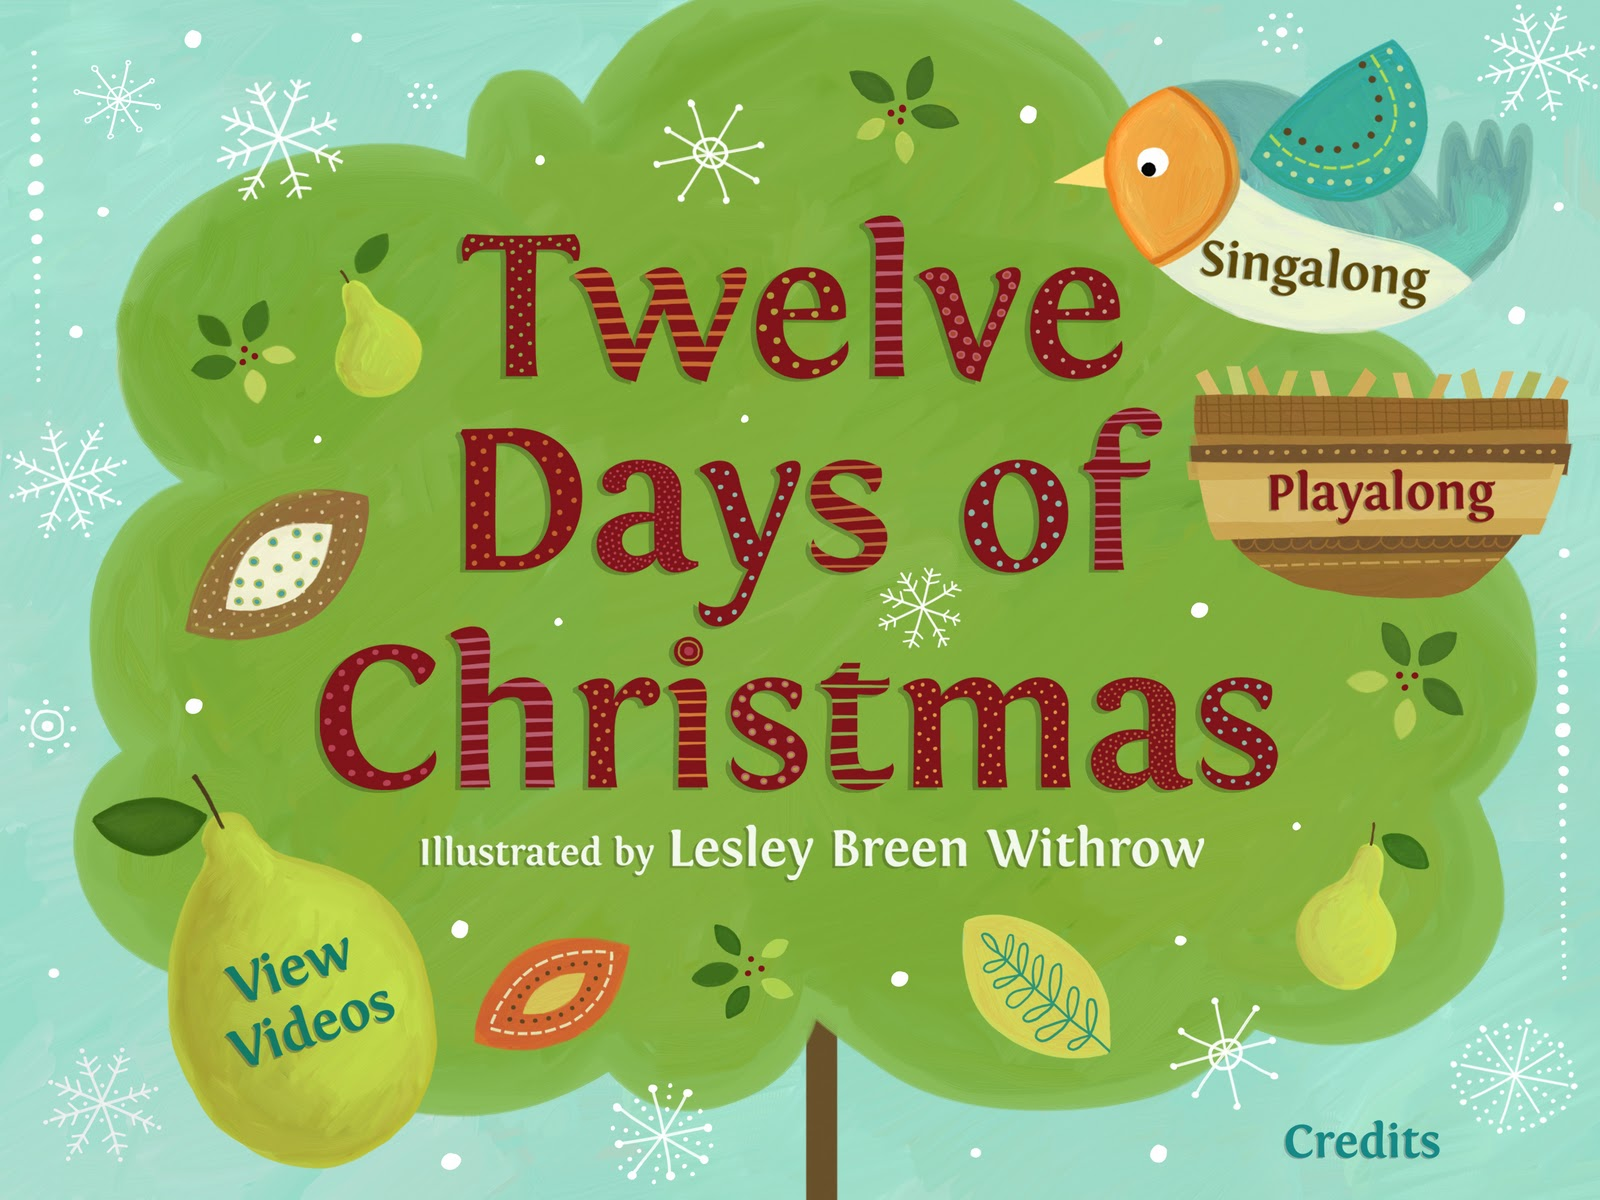 lesley breen withrow 12 days of christmas childrens book app published by polk street press aka my first childrens book app - 12 Days Of Christmas Book